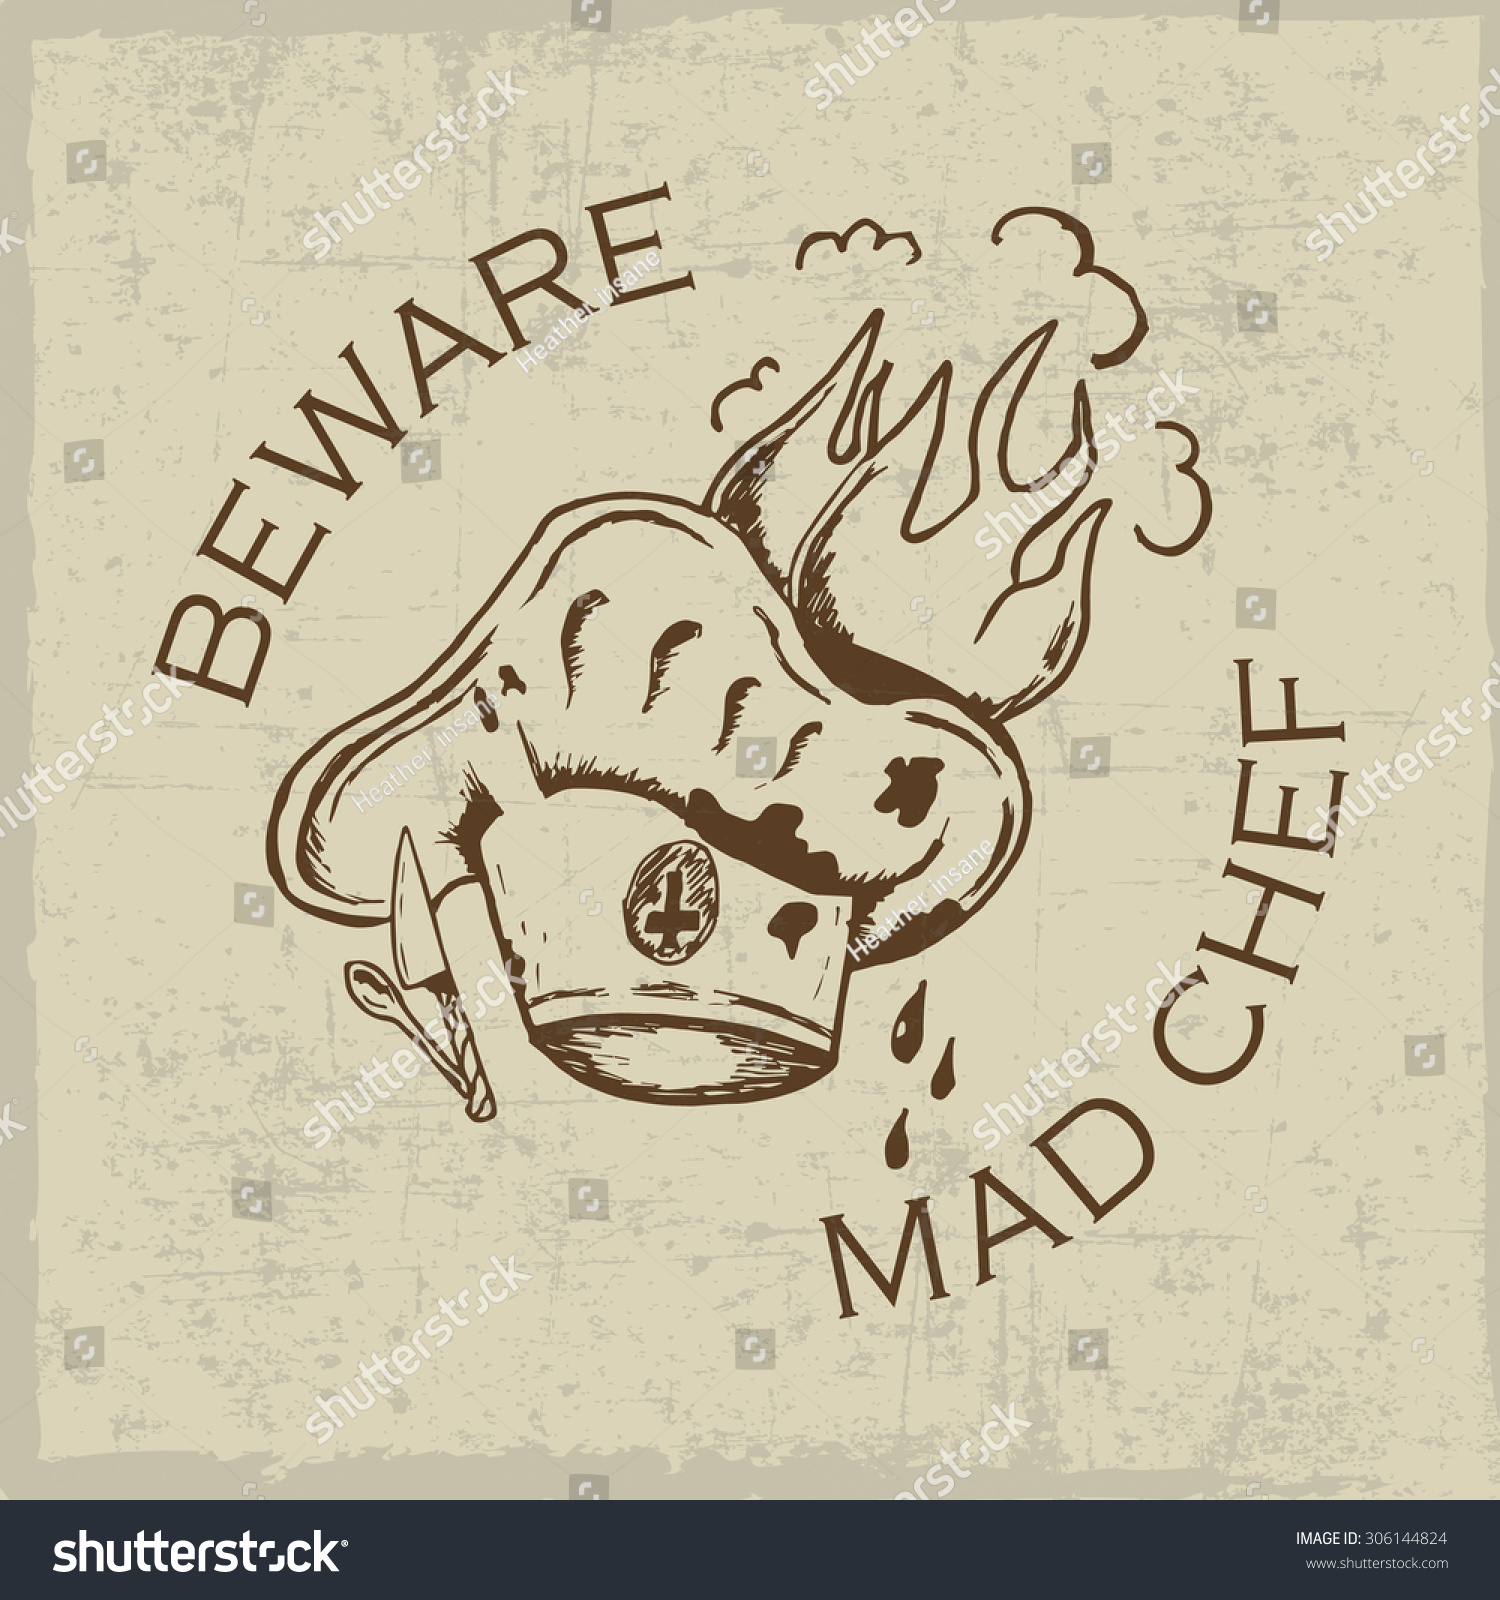 Shirt design ink - Beware Mad Chef T Shirt Design With Ink Hand Drawn Hat Knife And Spoon